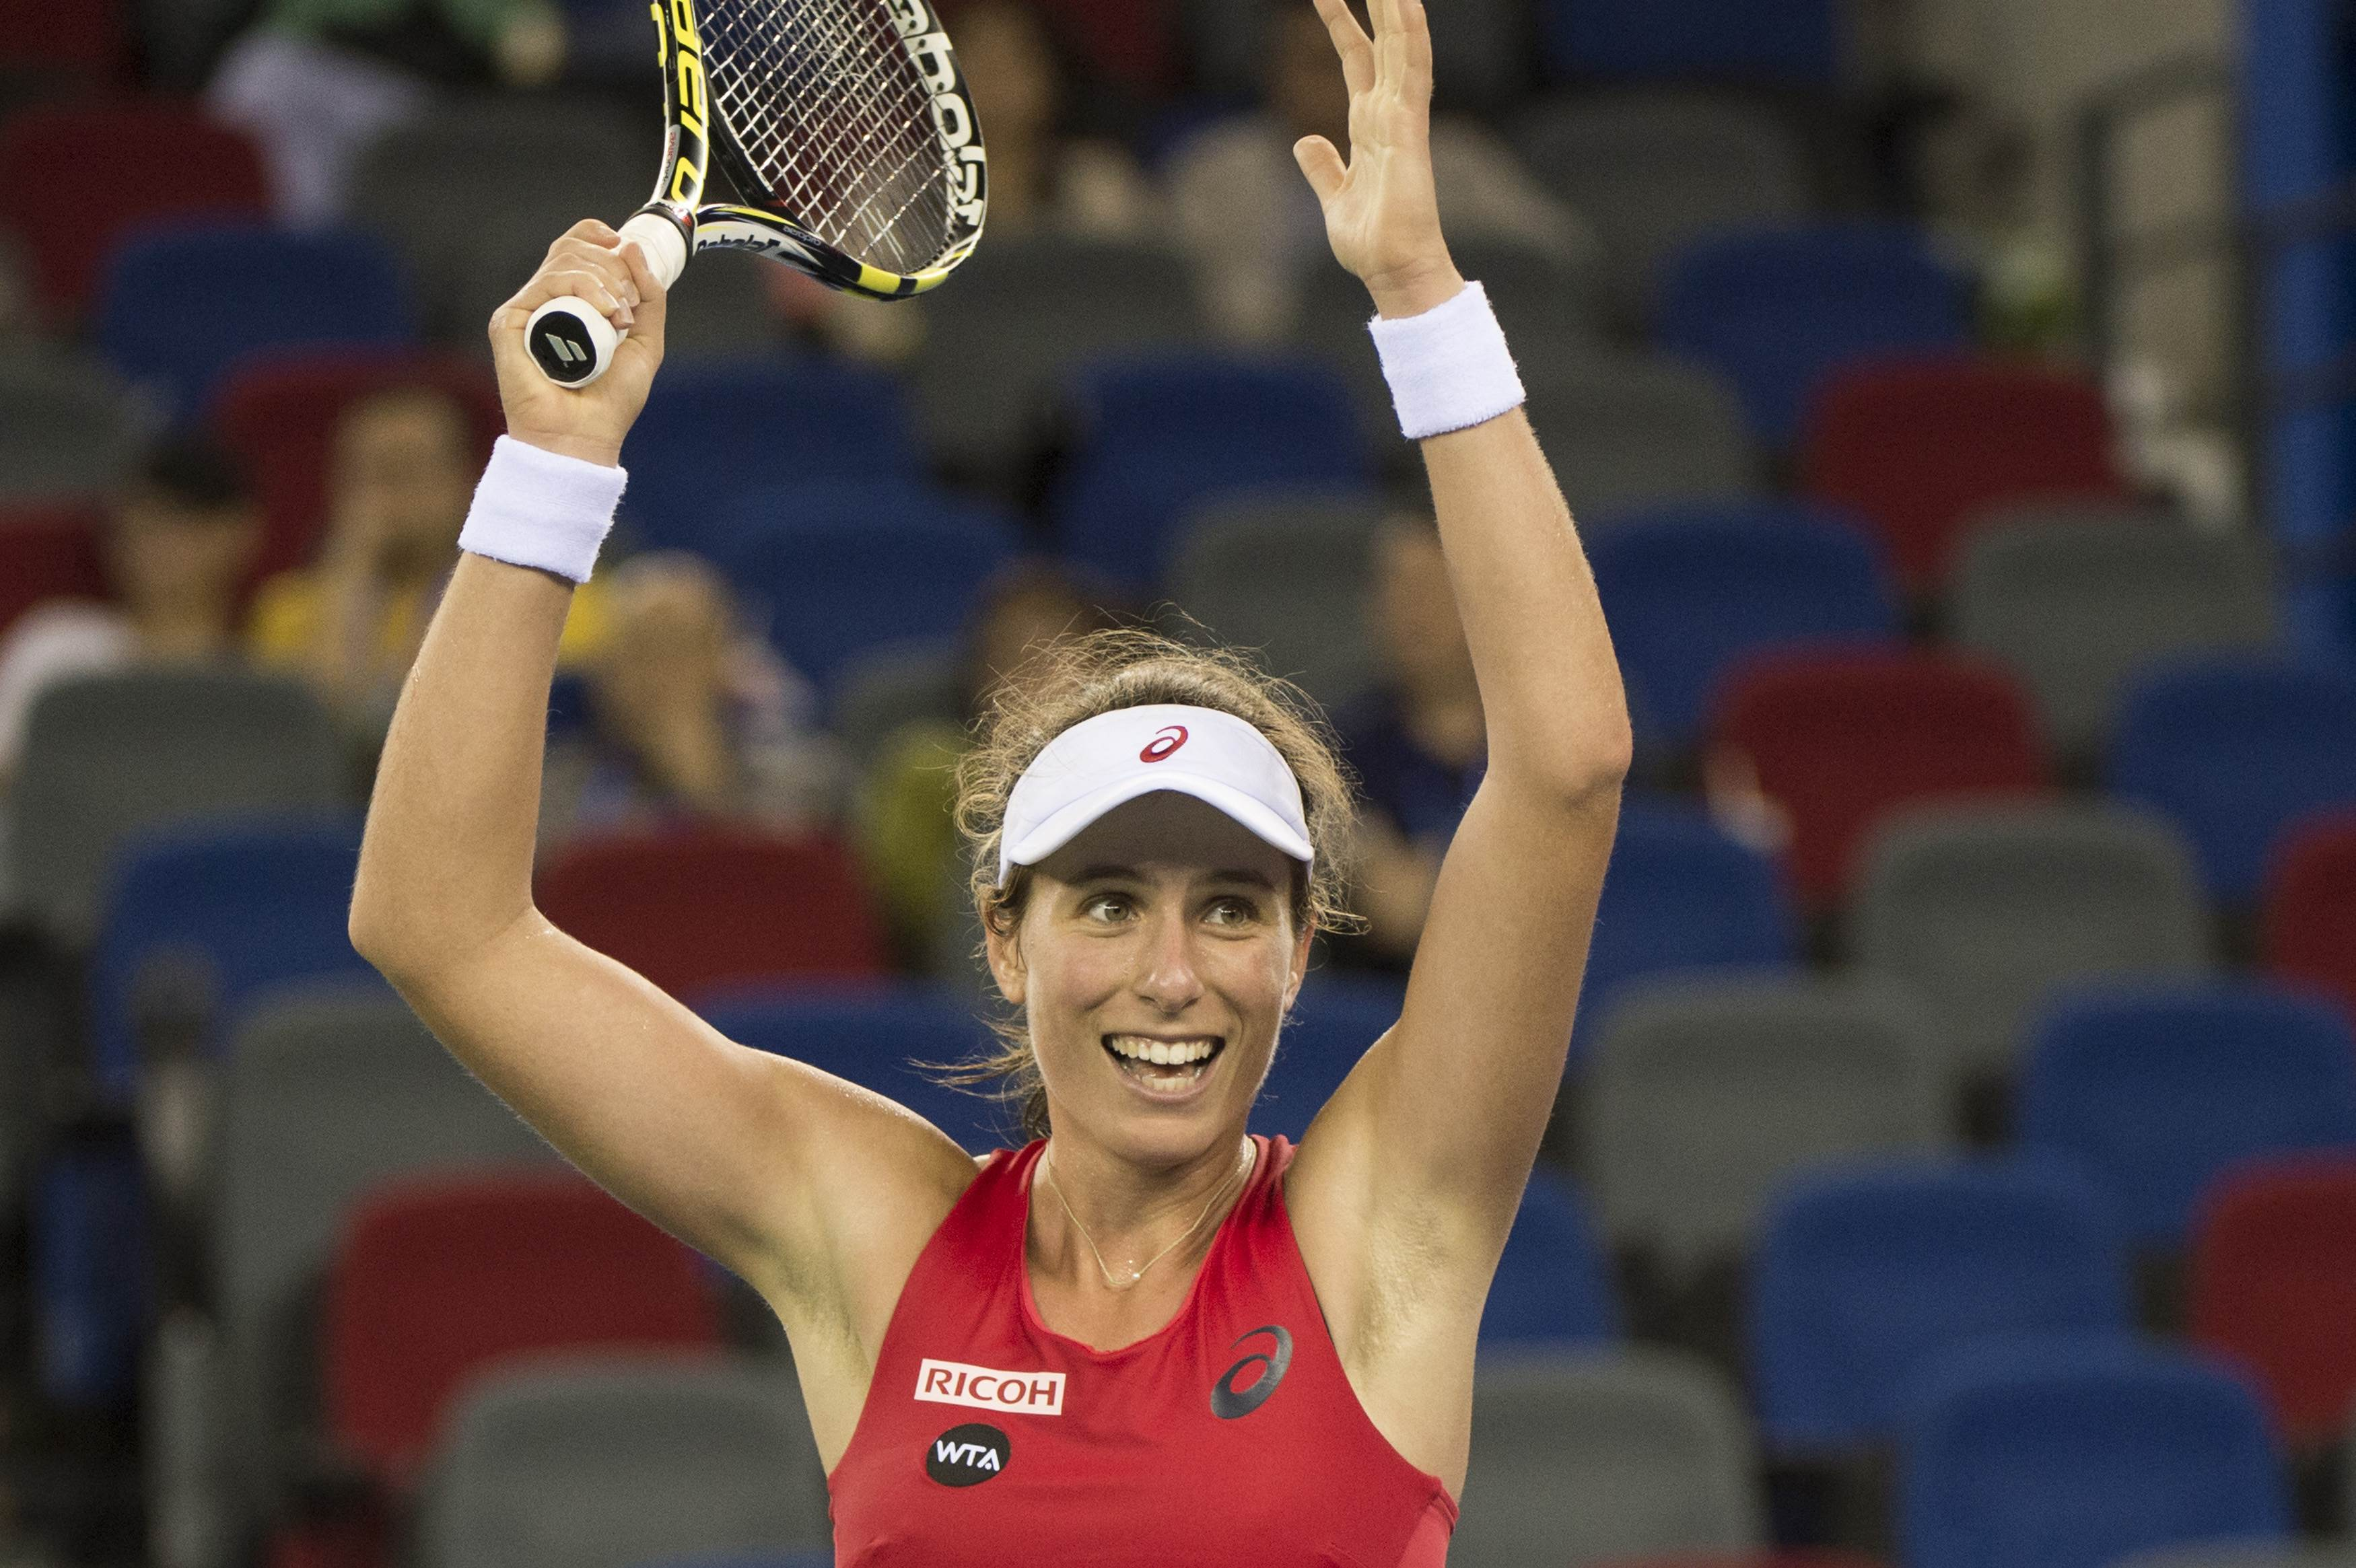 Johanna Konta of Great Britain reacts after she defeats Simona Halep of Romania during the women's singles match on day three of the Wuhan Open tennis tournament in Wuhan, in China's Hubei province on September 30, 2015. AFP PHOTO / FRED DUFOUR